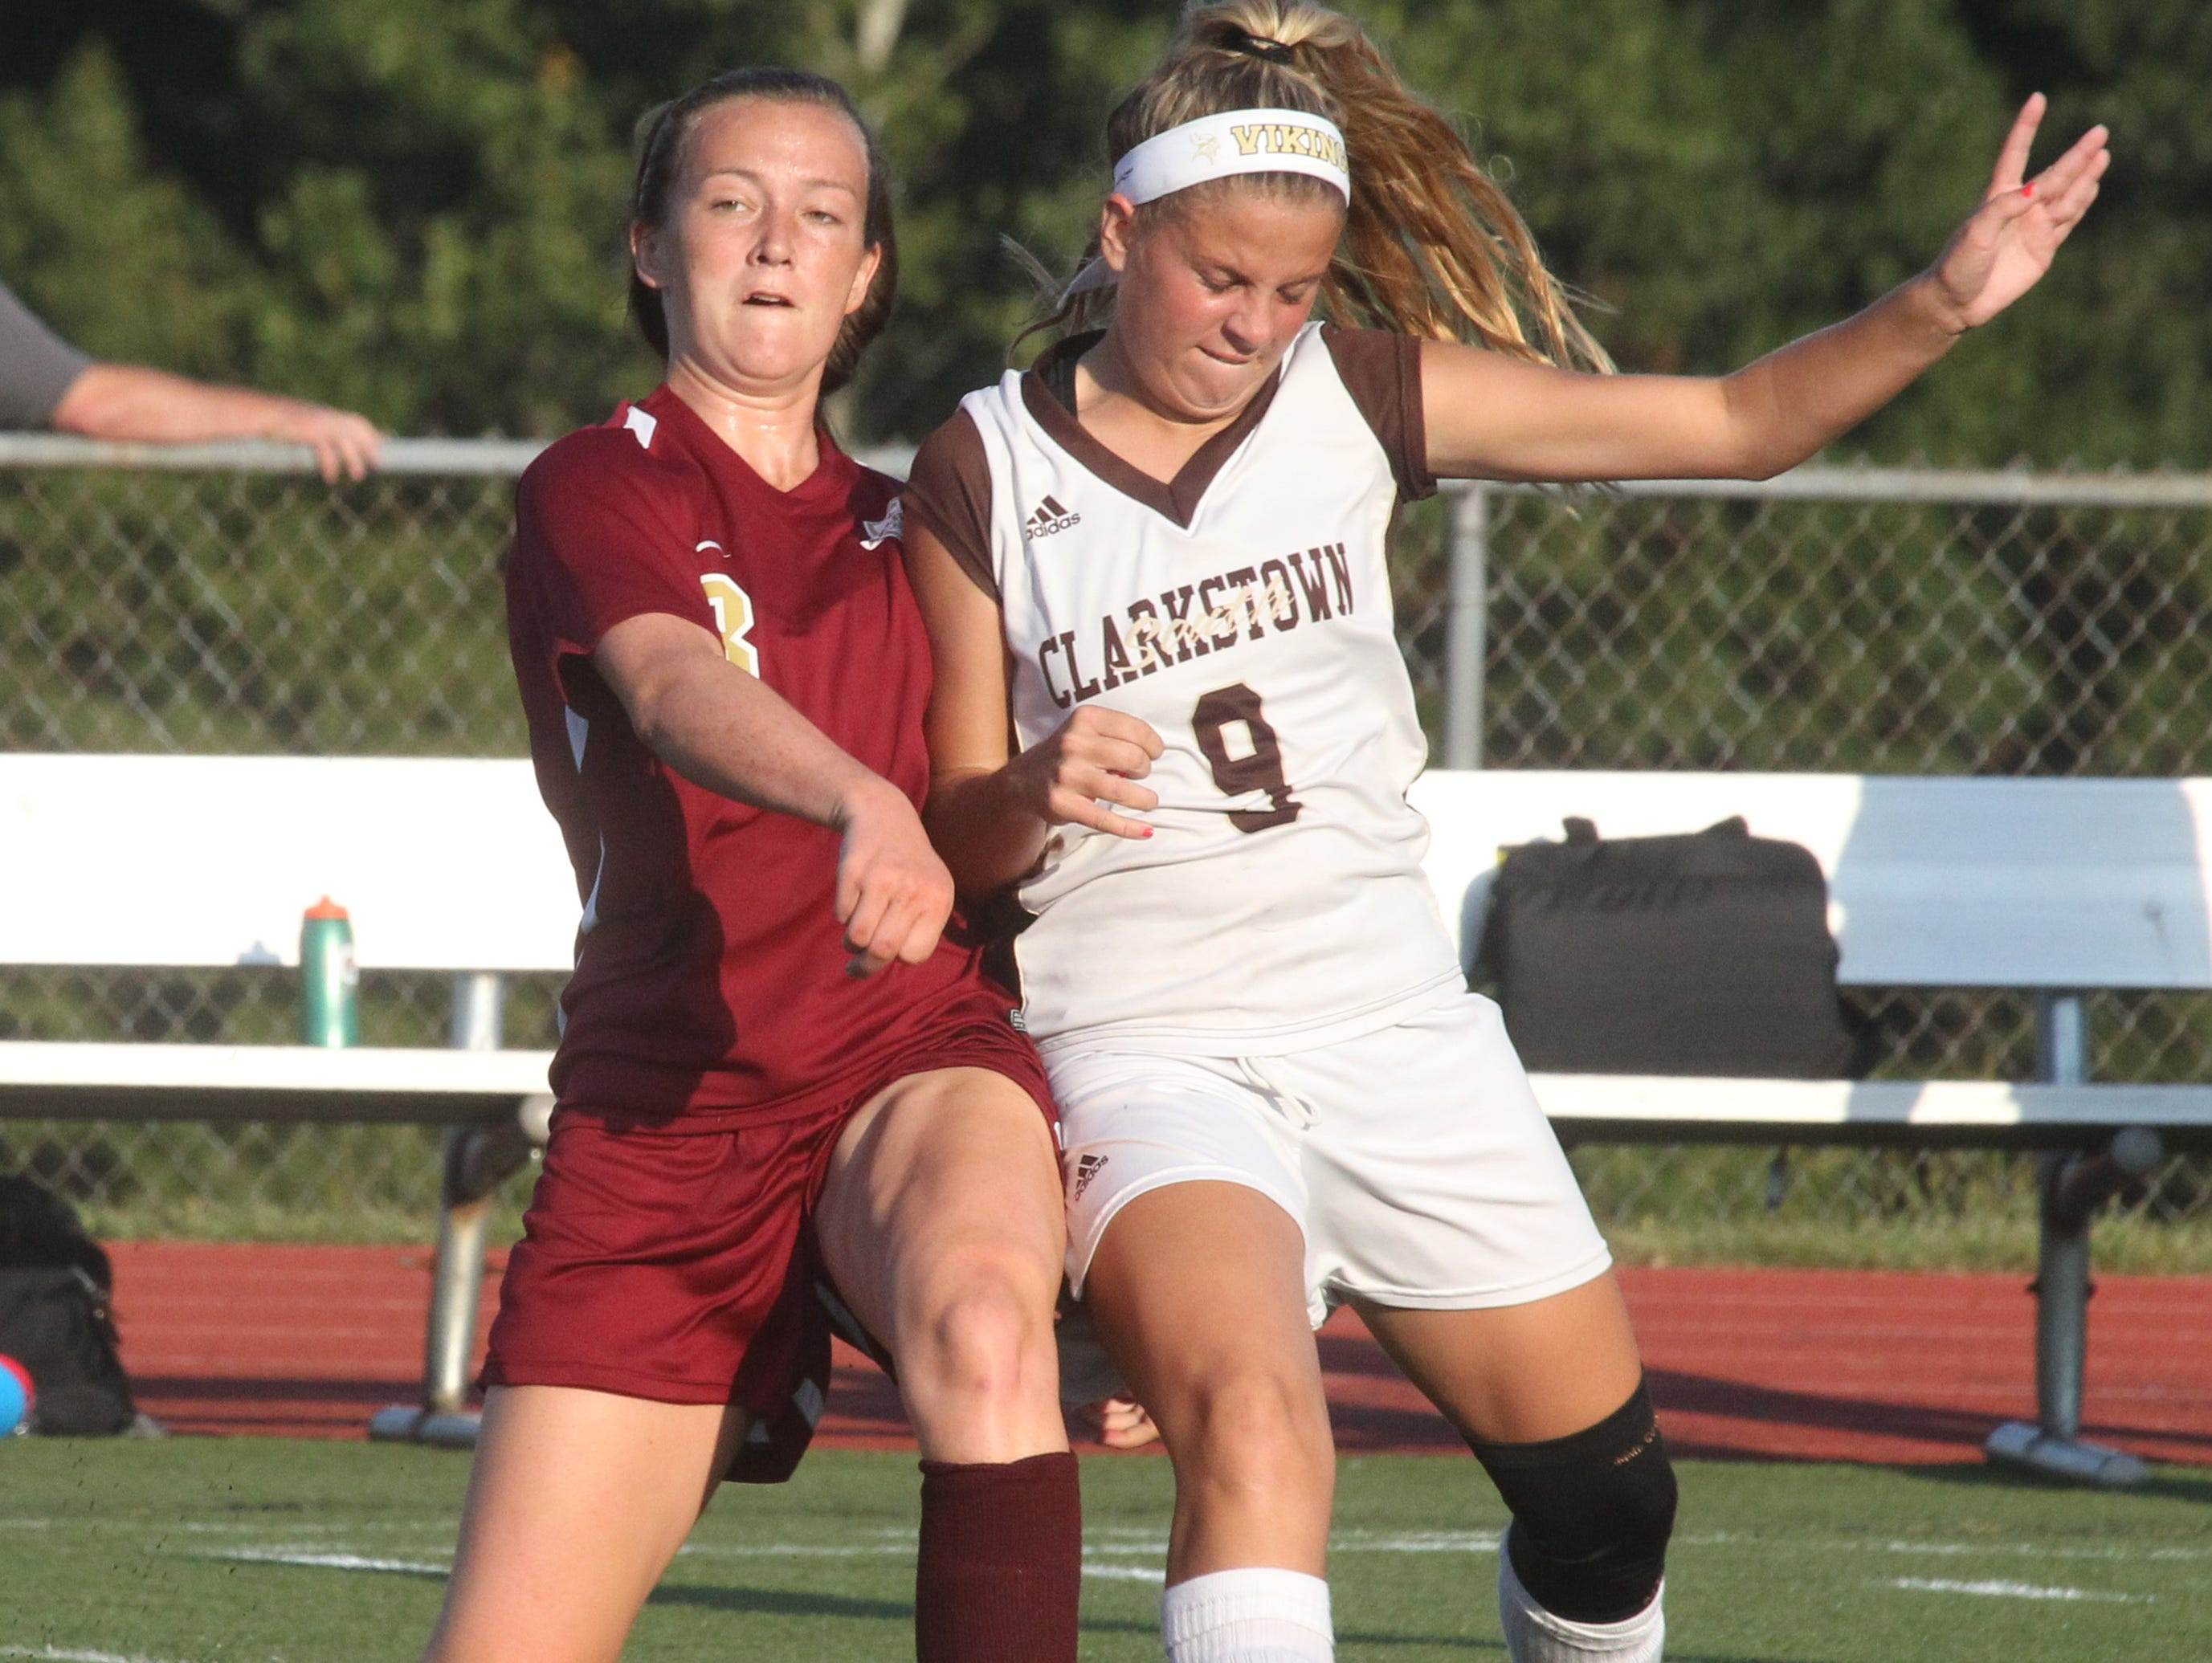 Arlington's Emma Sbrollini, left, fights for the ball with Clarkstown South's Abby Montera during their game at Clarkstown South on Tuesday.